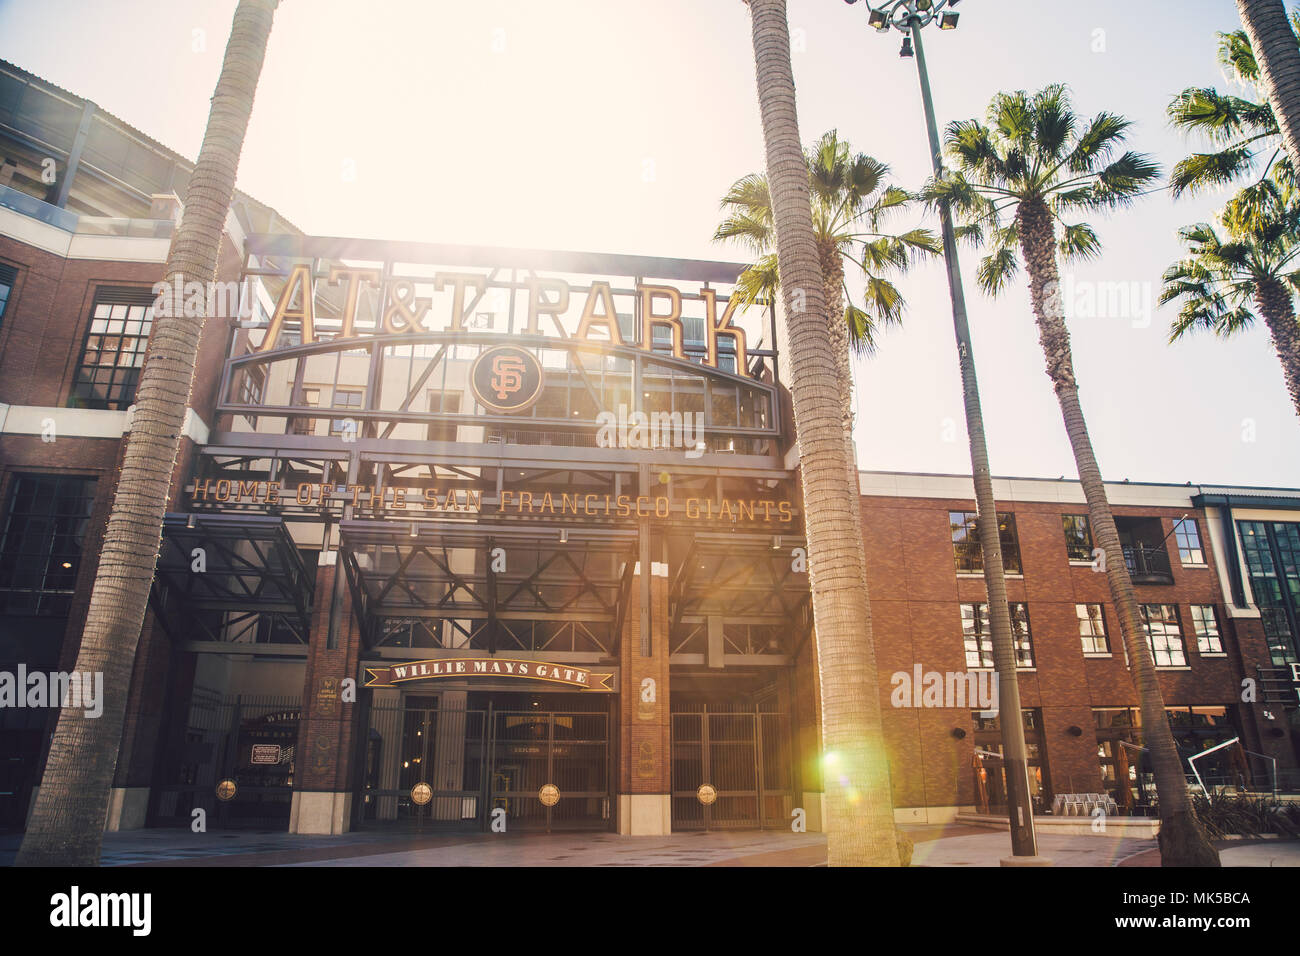 Panorama view of historic AT&T Park baseball park, home of the San Francisco Giants professional baseball franchise, on a sunny day, California, USA - Stock Image